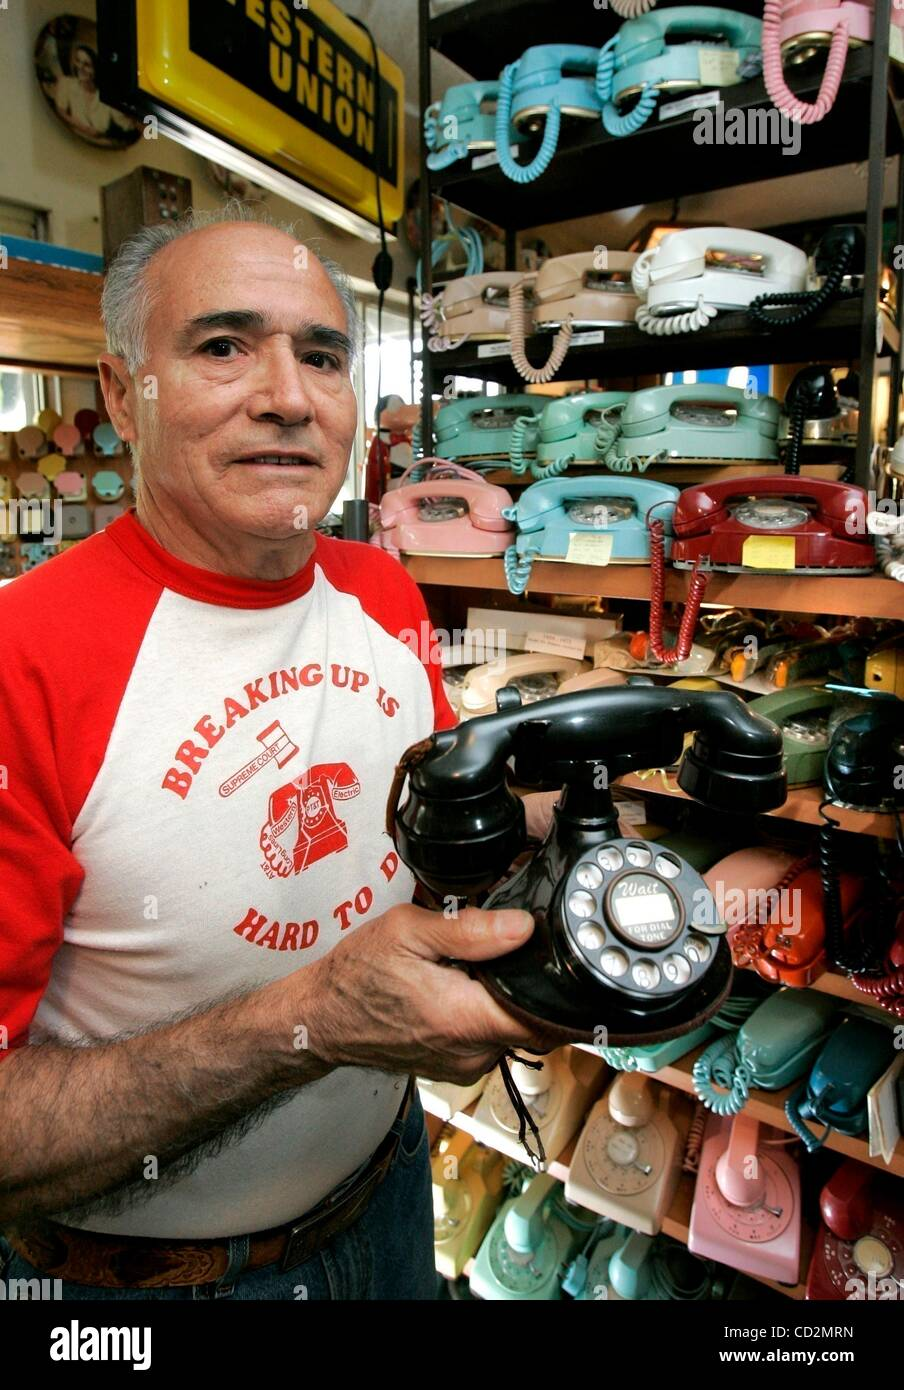 Mar 13, 2008 - San Diego, California, USA - Portrait of former phone company employee HERMAN ESQUIBEL with some - Stock Image